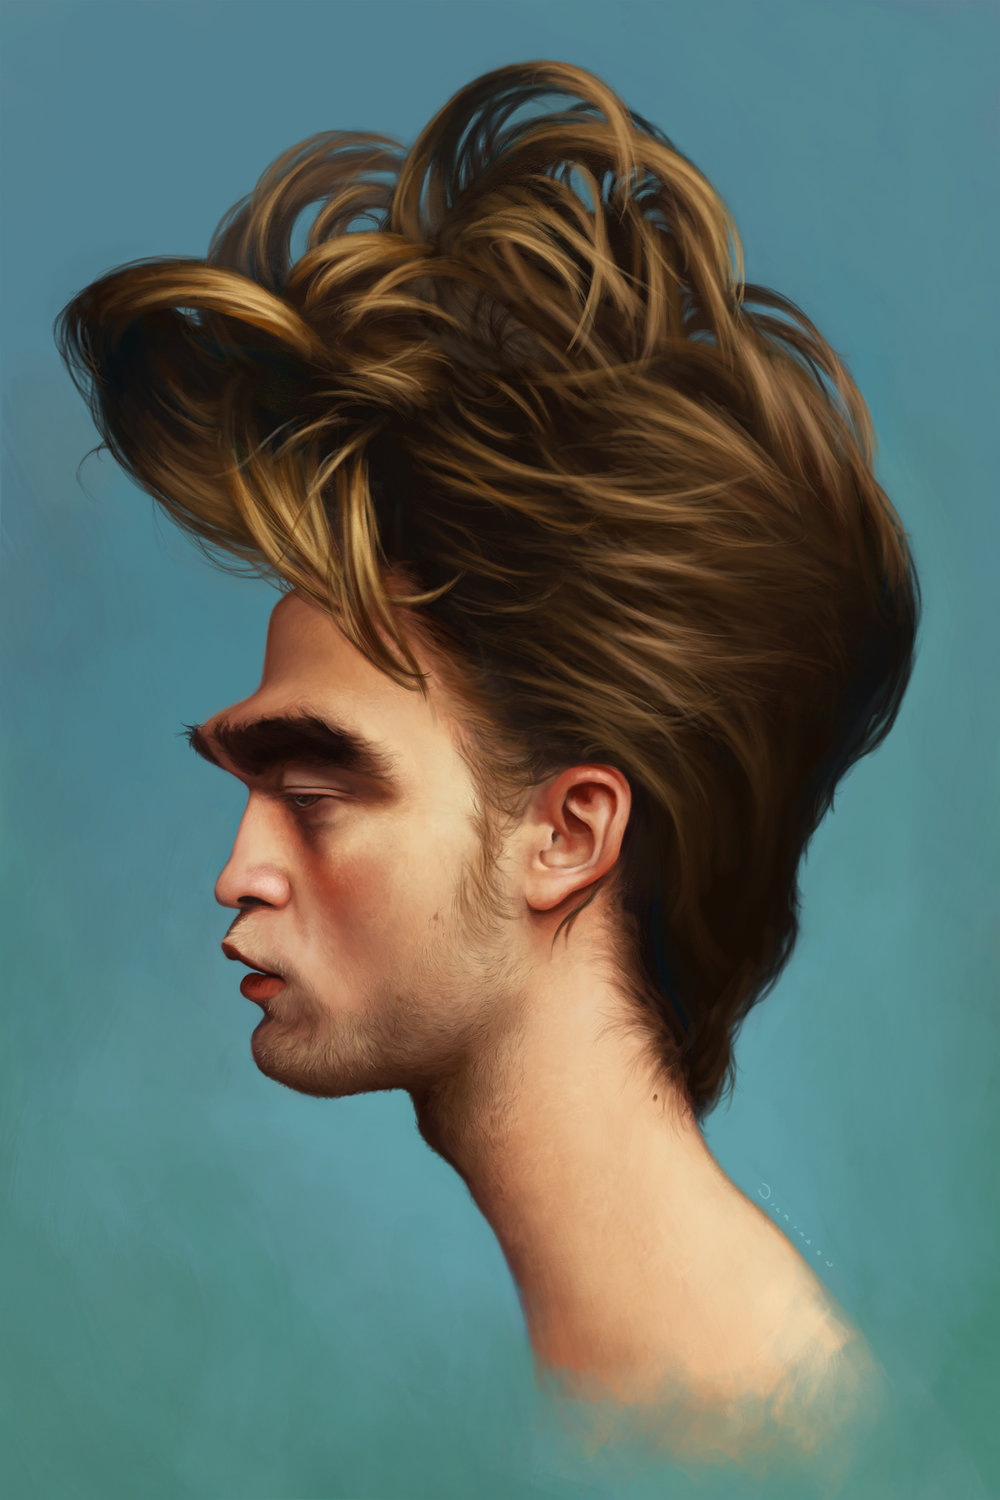 Robert Pattinson Caricature